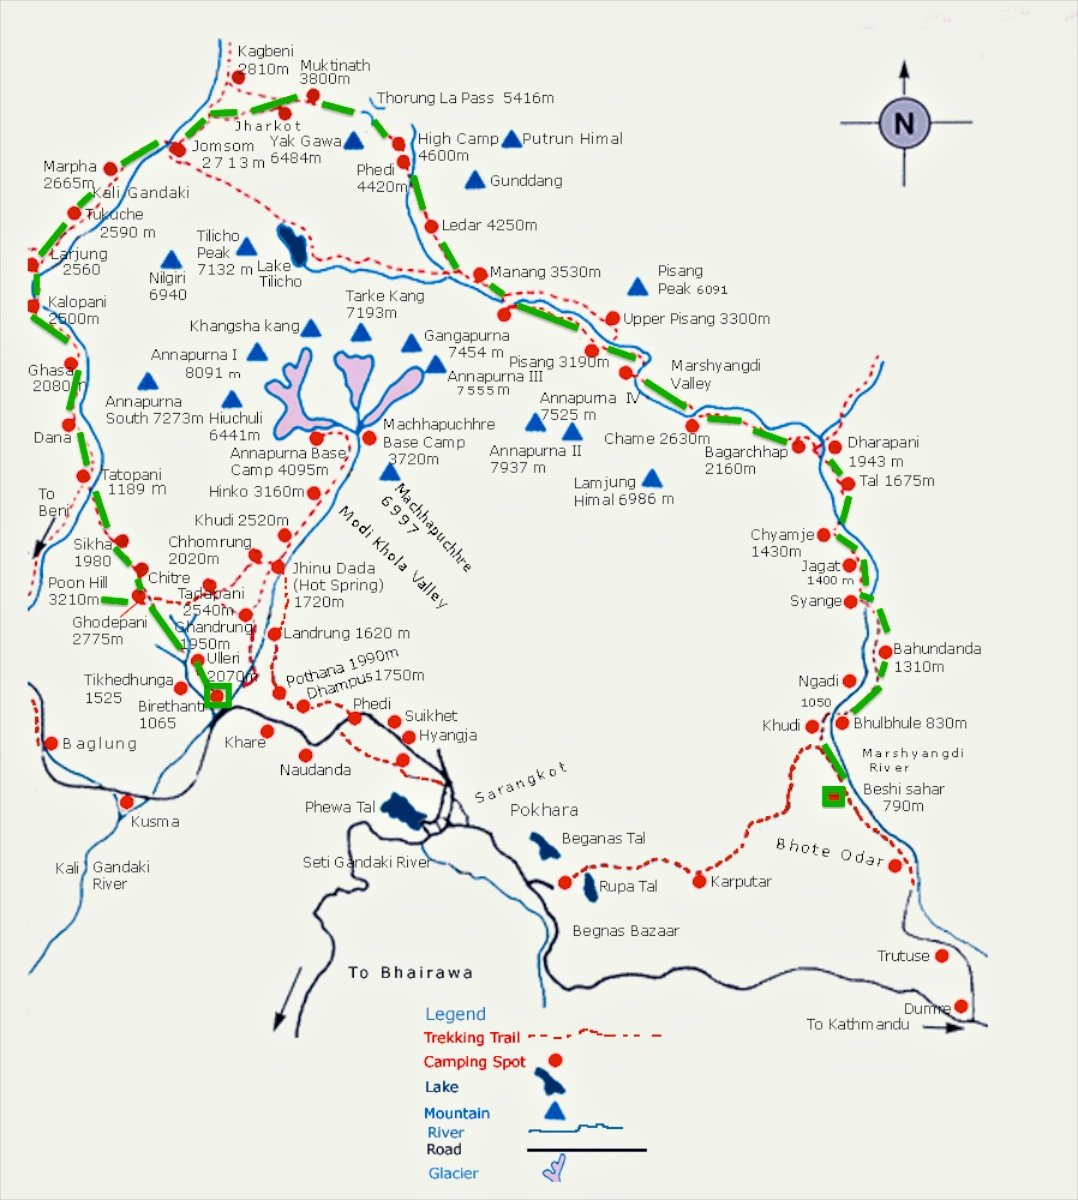 Annapurna Circuit Trekking Route and Map